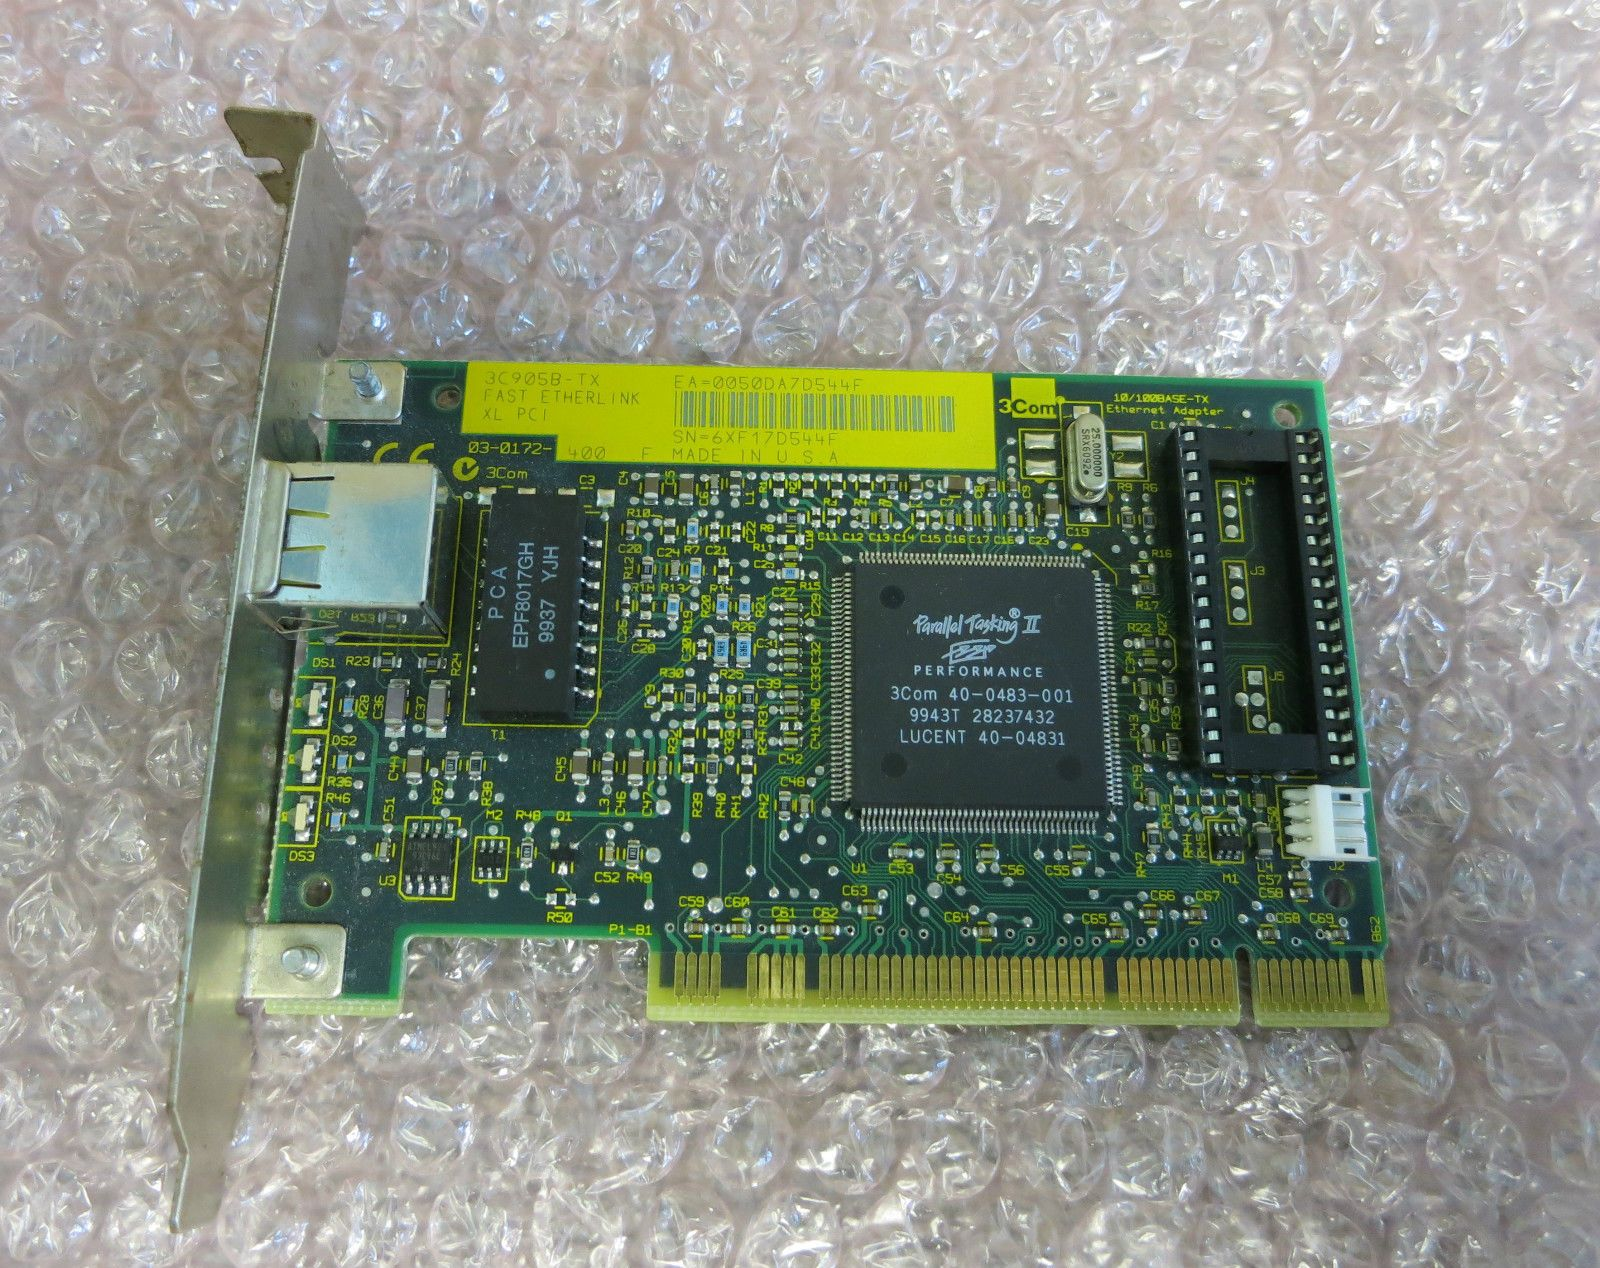 3Com EtherLink 10/100 PCI For Complete PC Management NIC Download Drivers